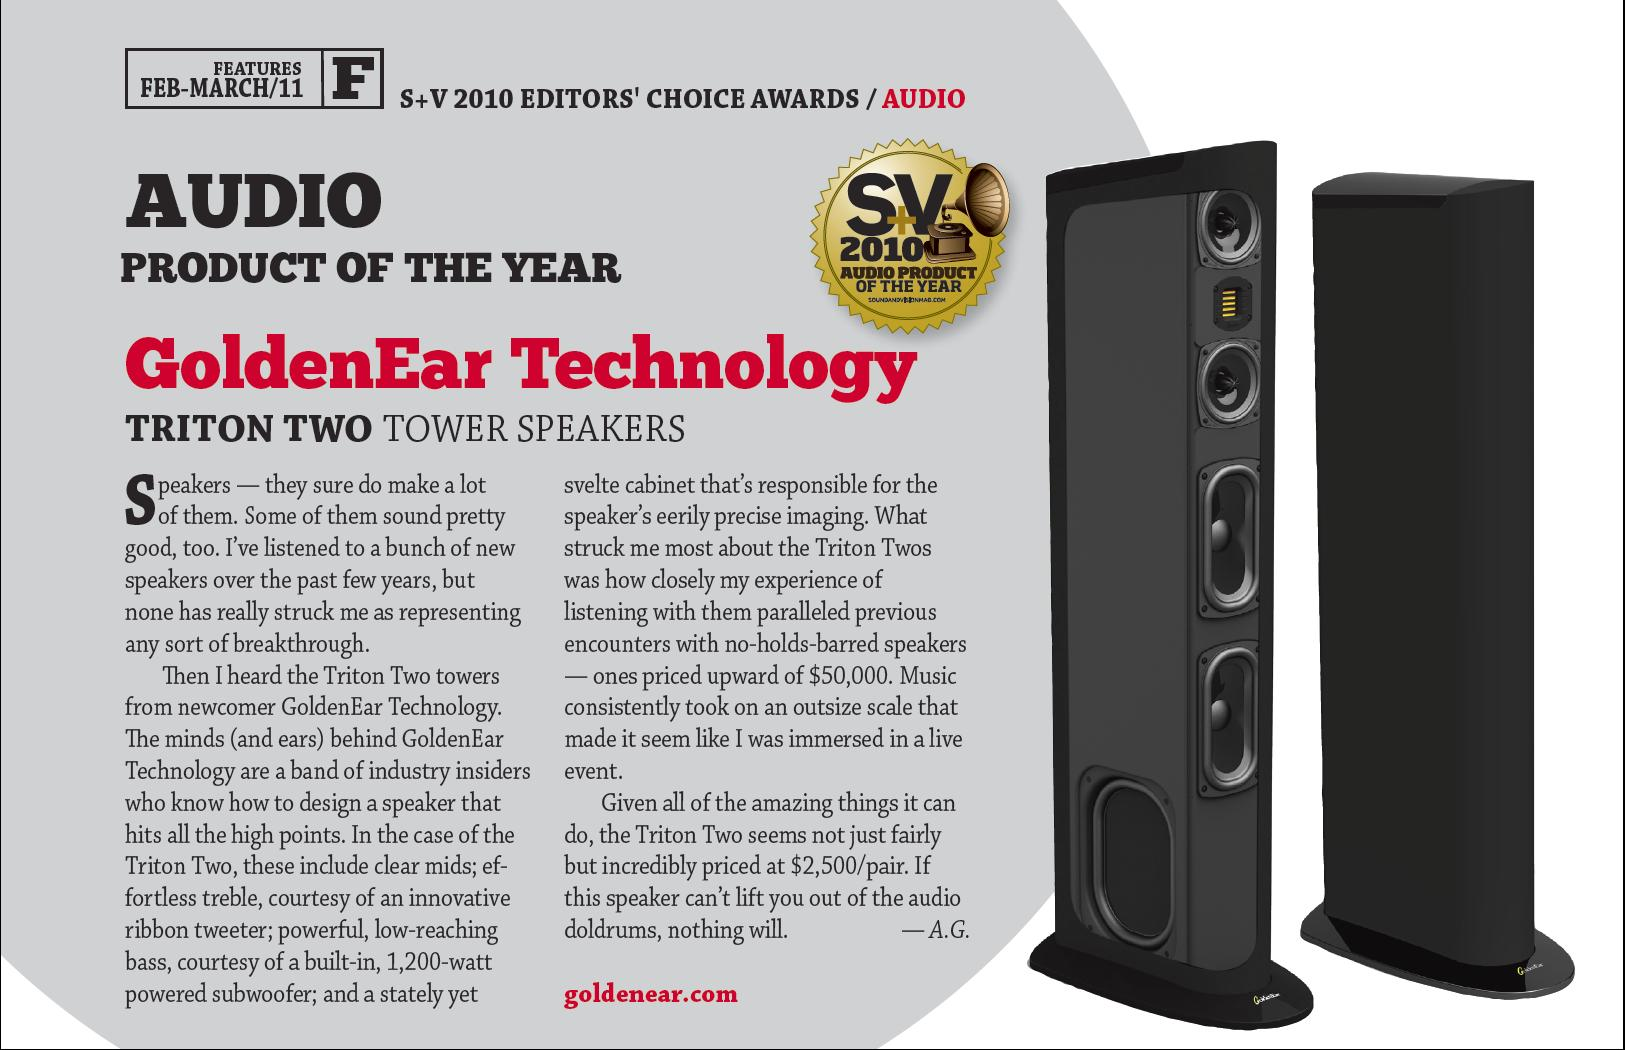 S&V 2010 Product of the Year